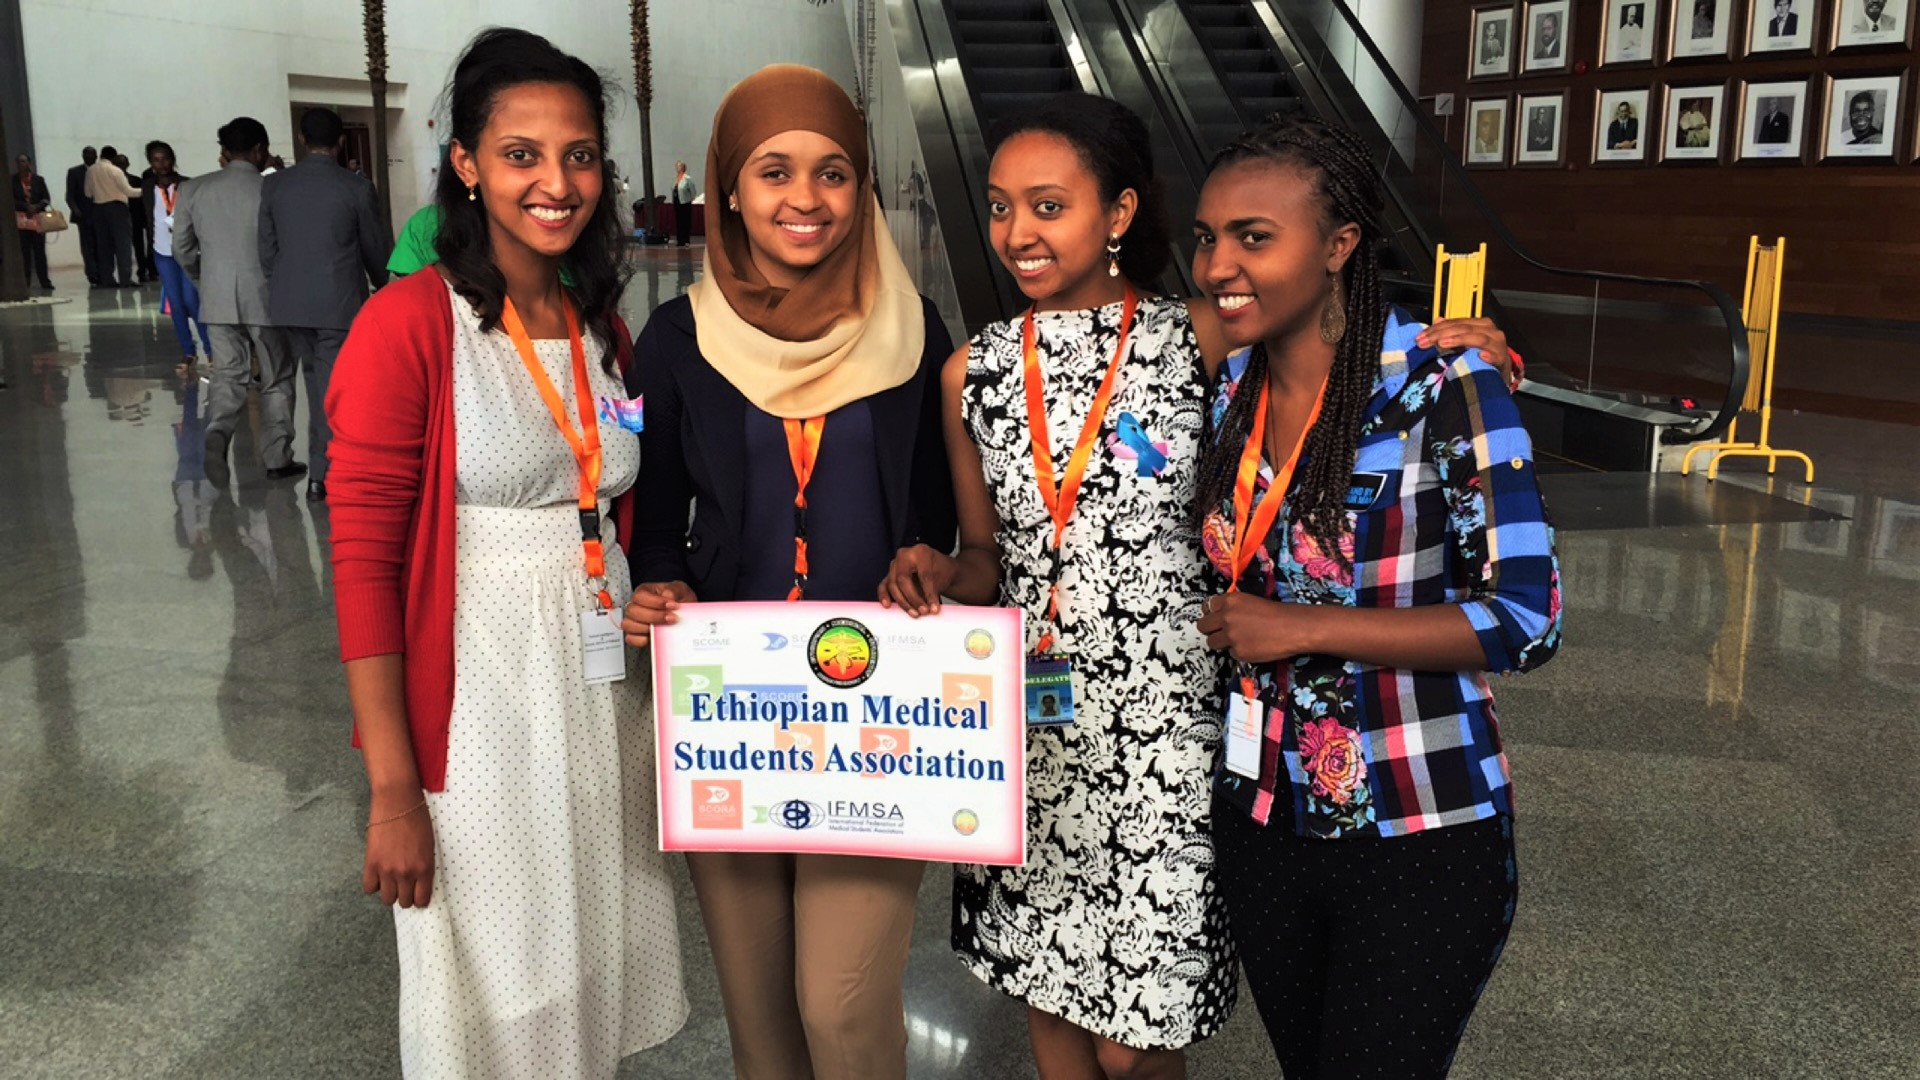 Ethiopia African Union SCCA Conference Addis Ababa Medical Students